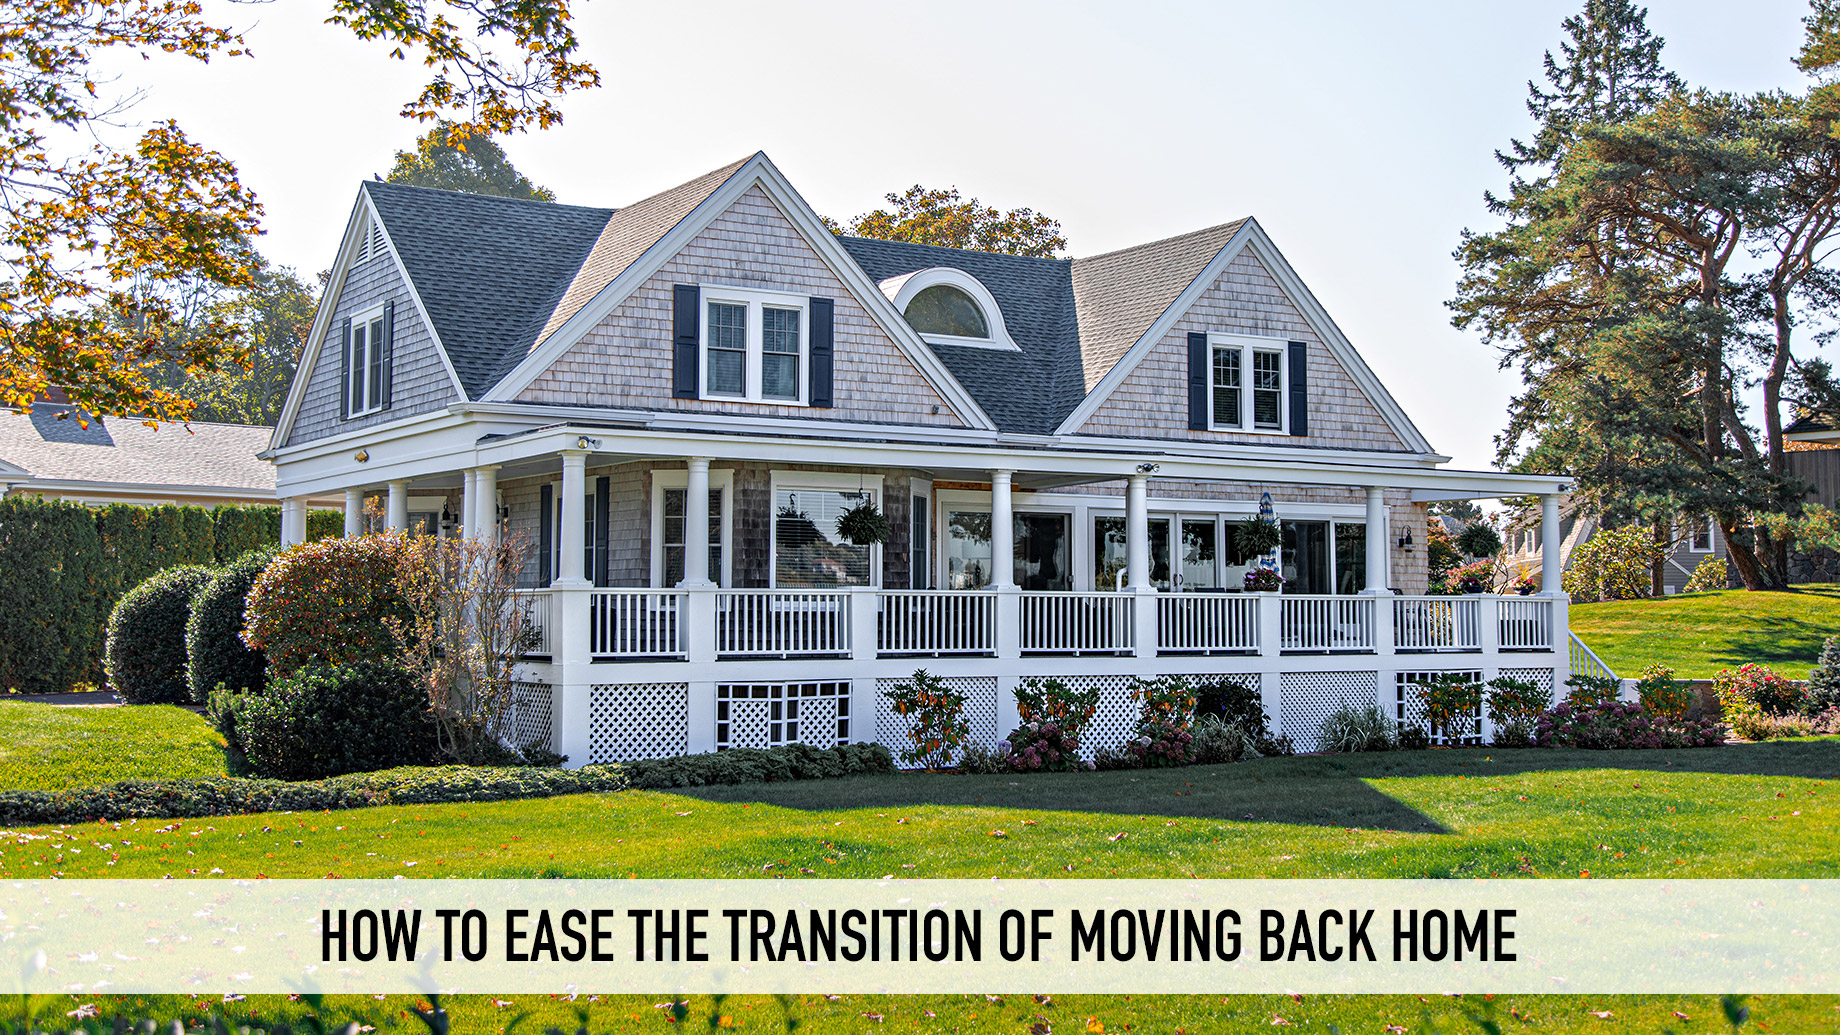 How to Ease the Transition of Moving Back Home